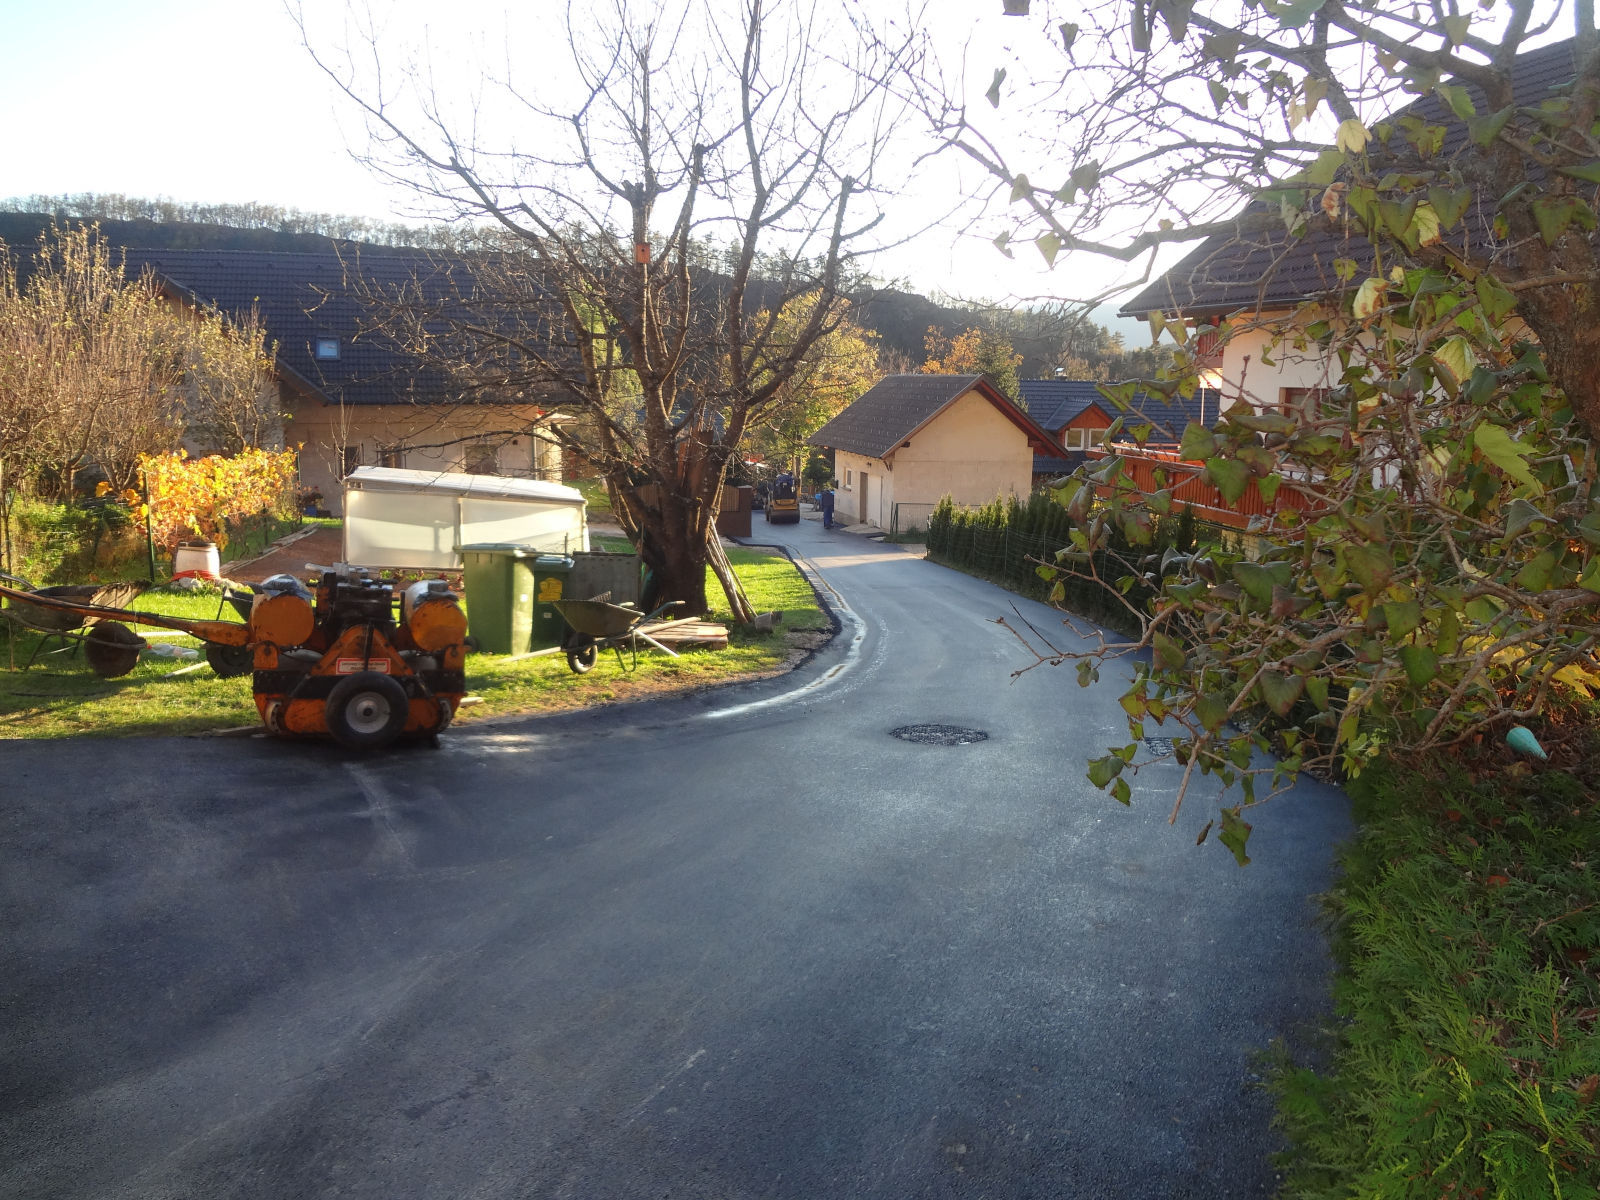 The driveway of Apartments Fine Stay after resurfacing with new asphalt